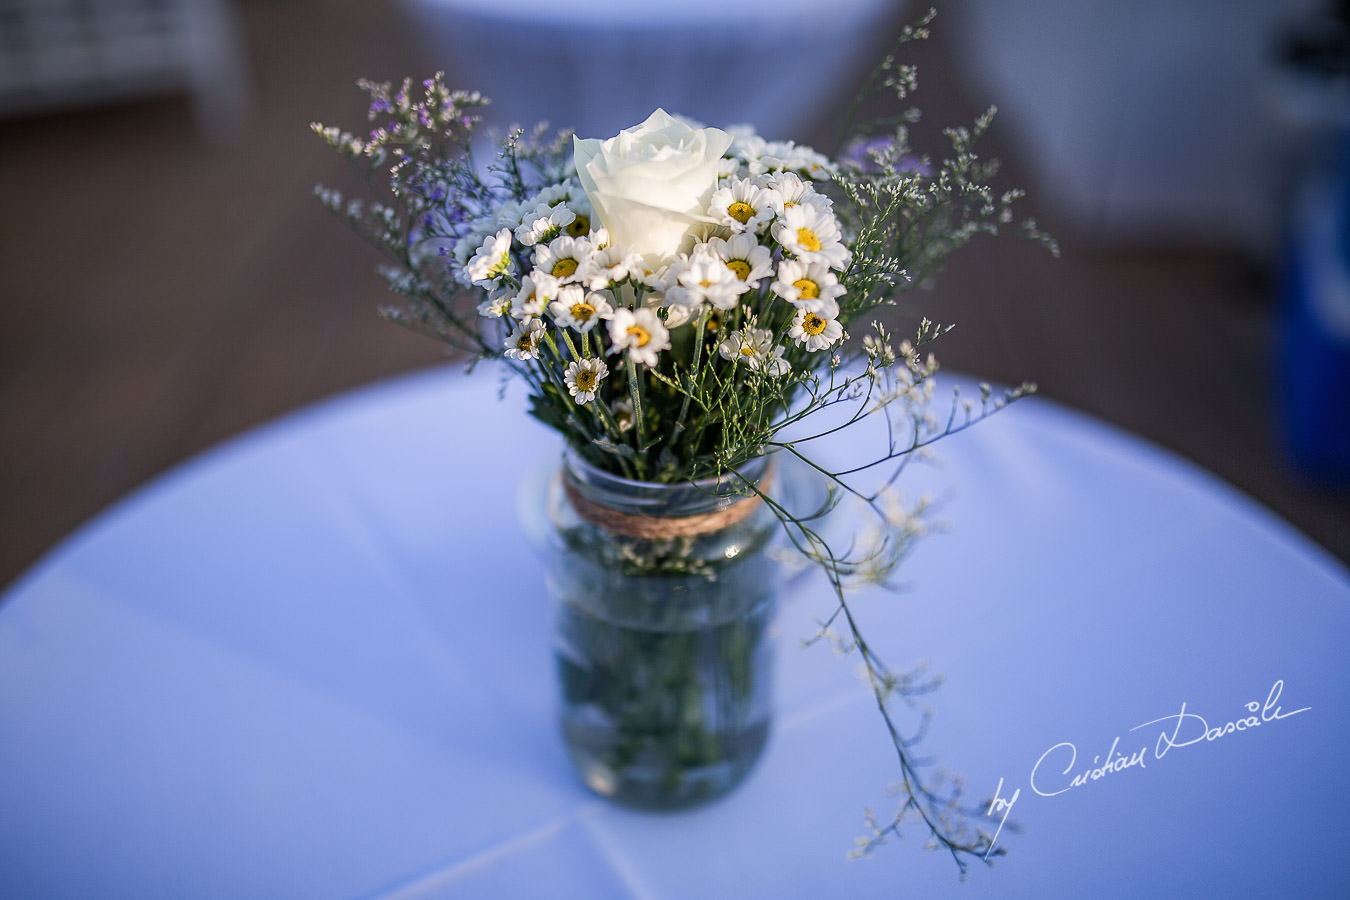 Wedding floral details captured during a wedding photography at the Lighthouse Limassol, by Cyprus Photographer Cristian Dascalu.